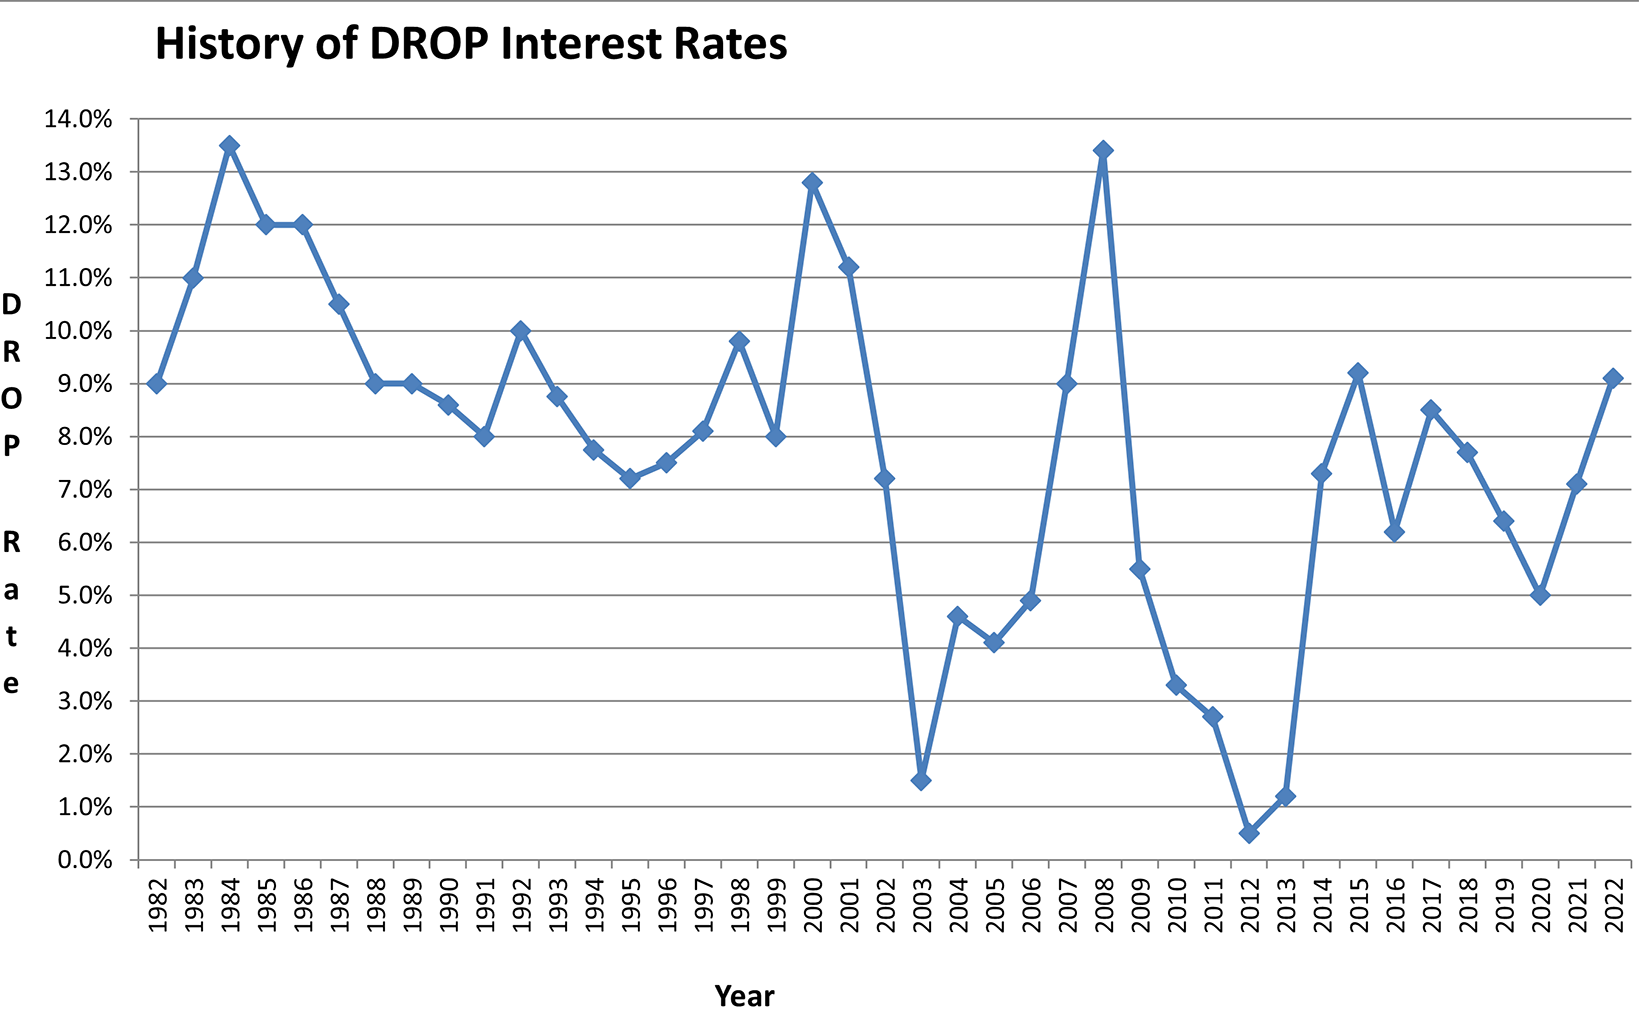 Graph of DROP interest rates